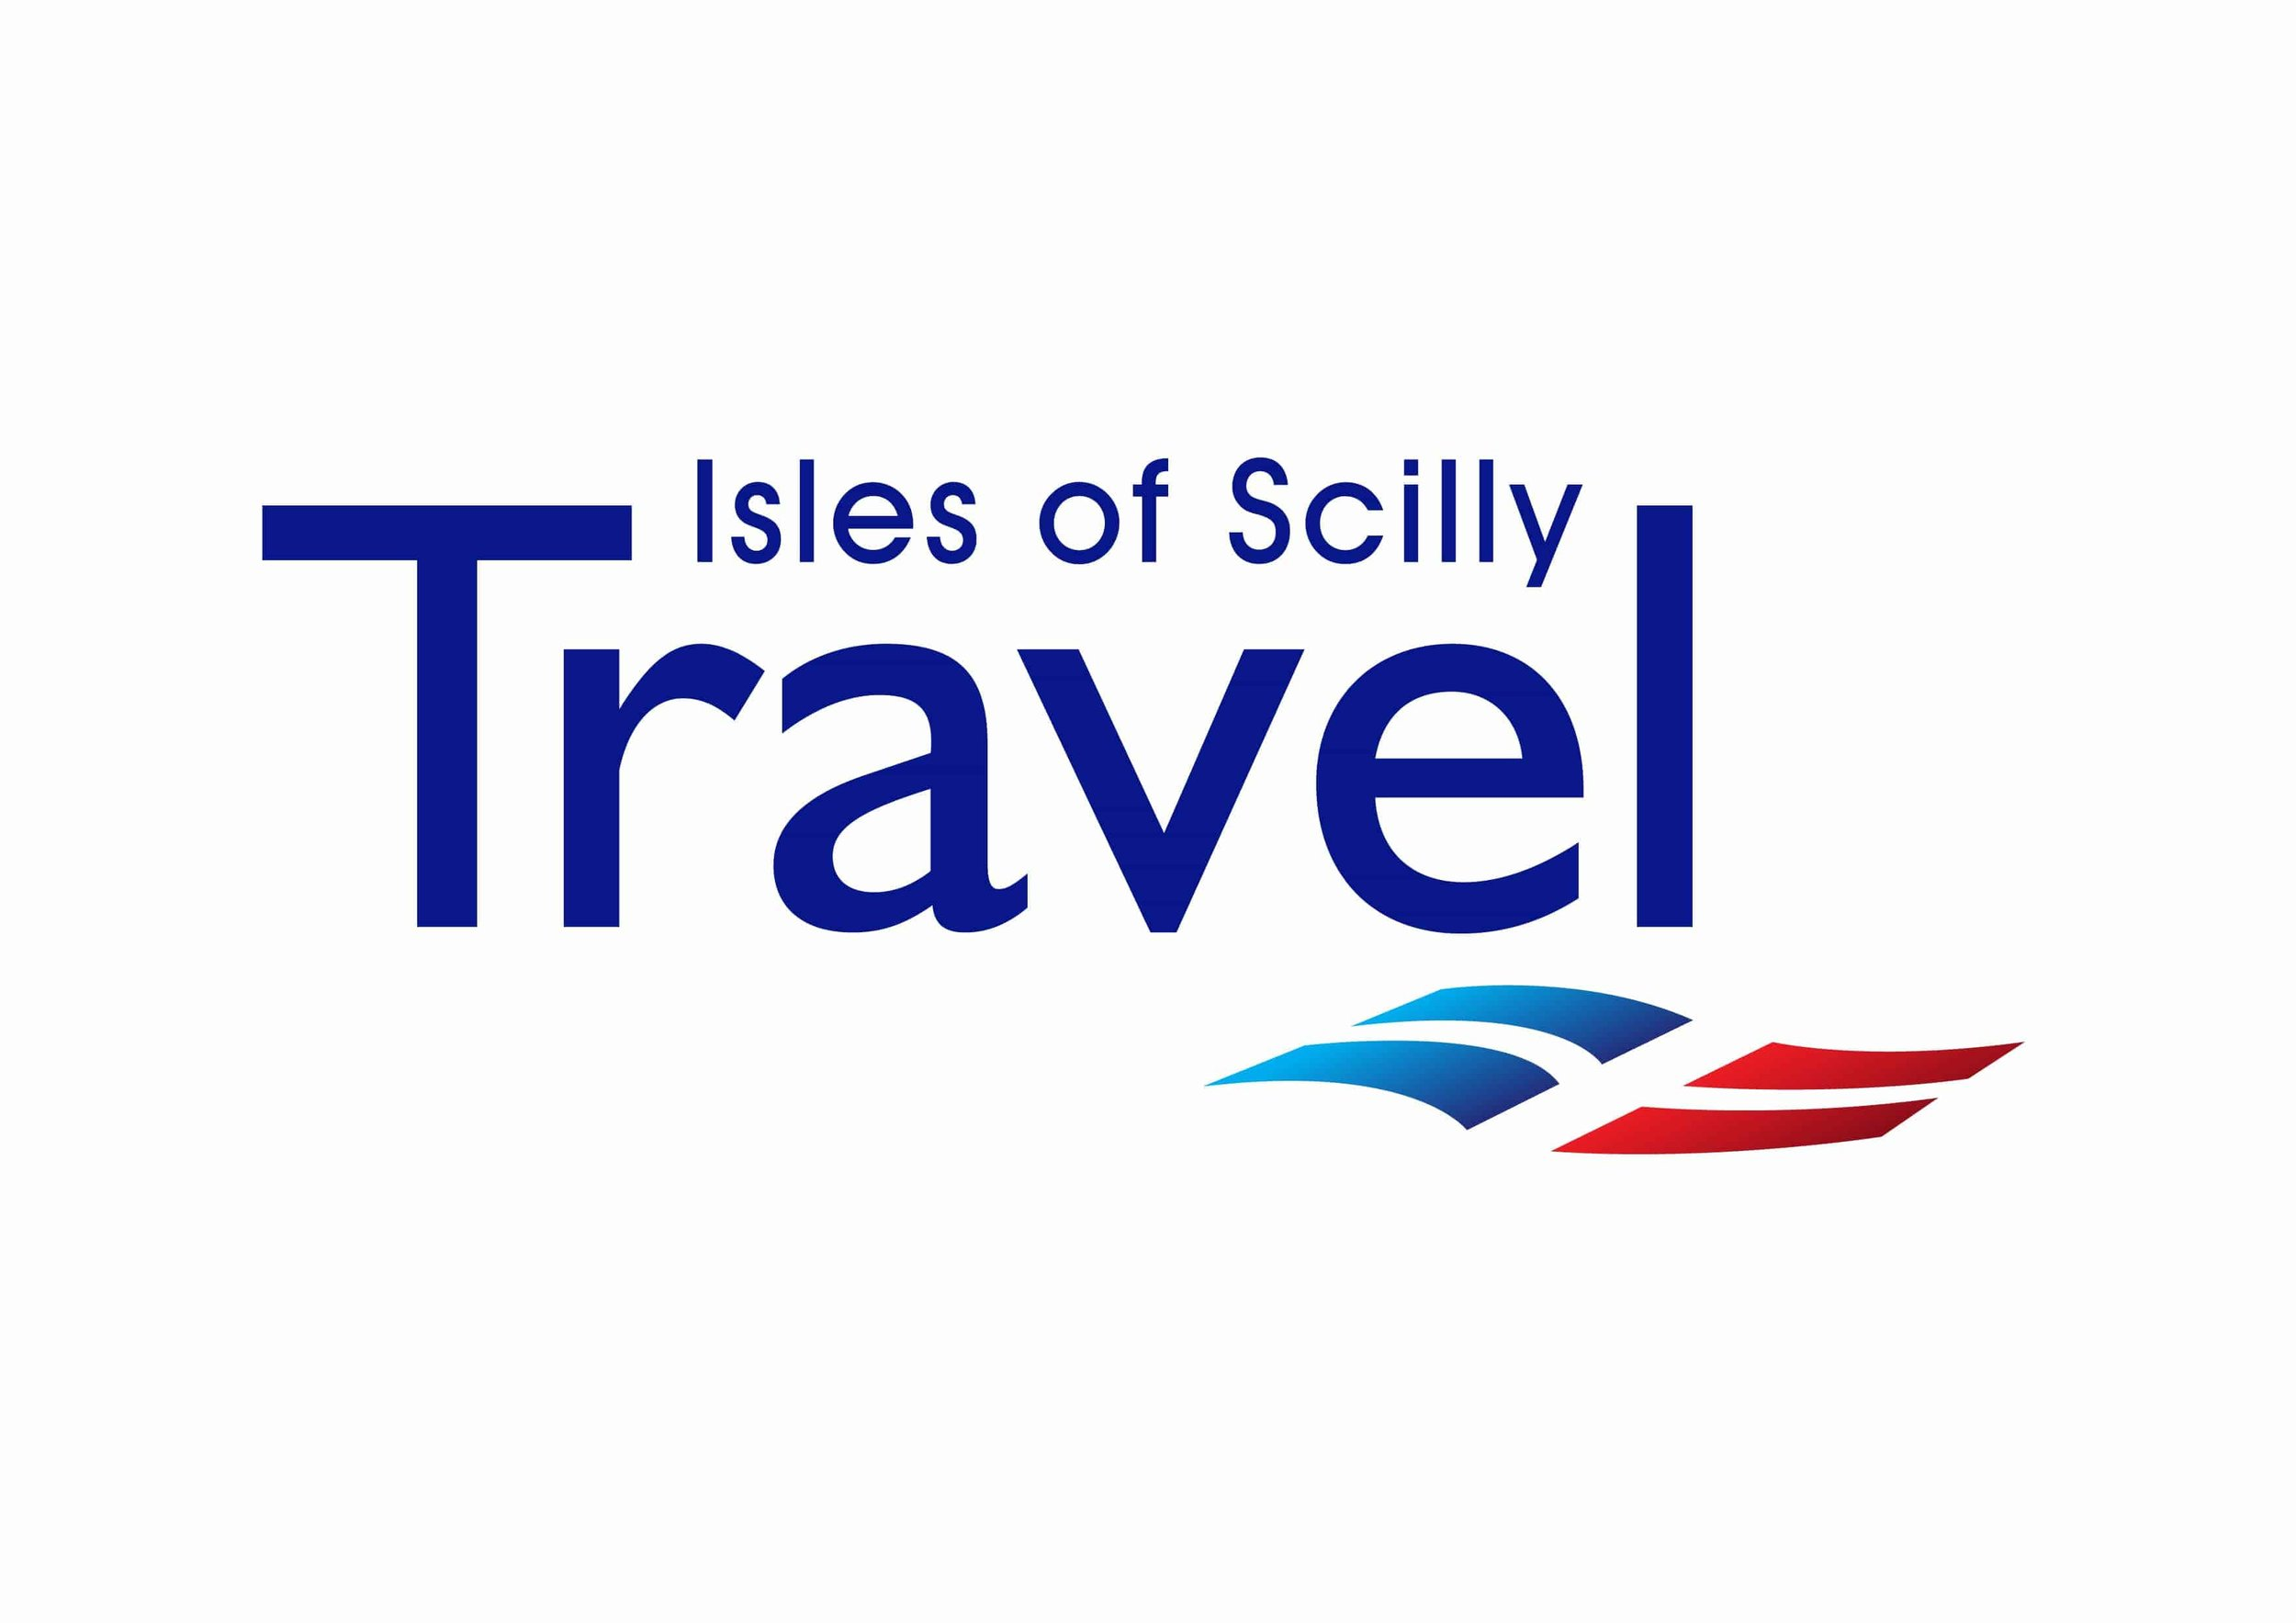 Isles of Scilly Travels